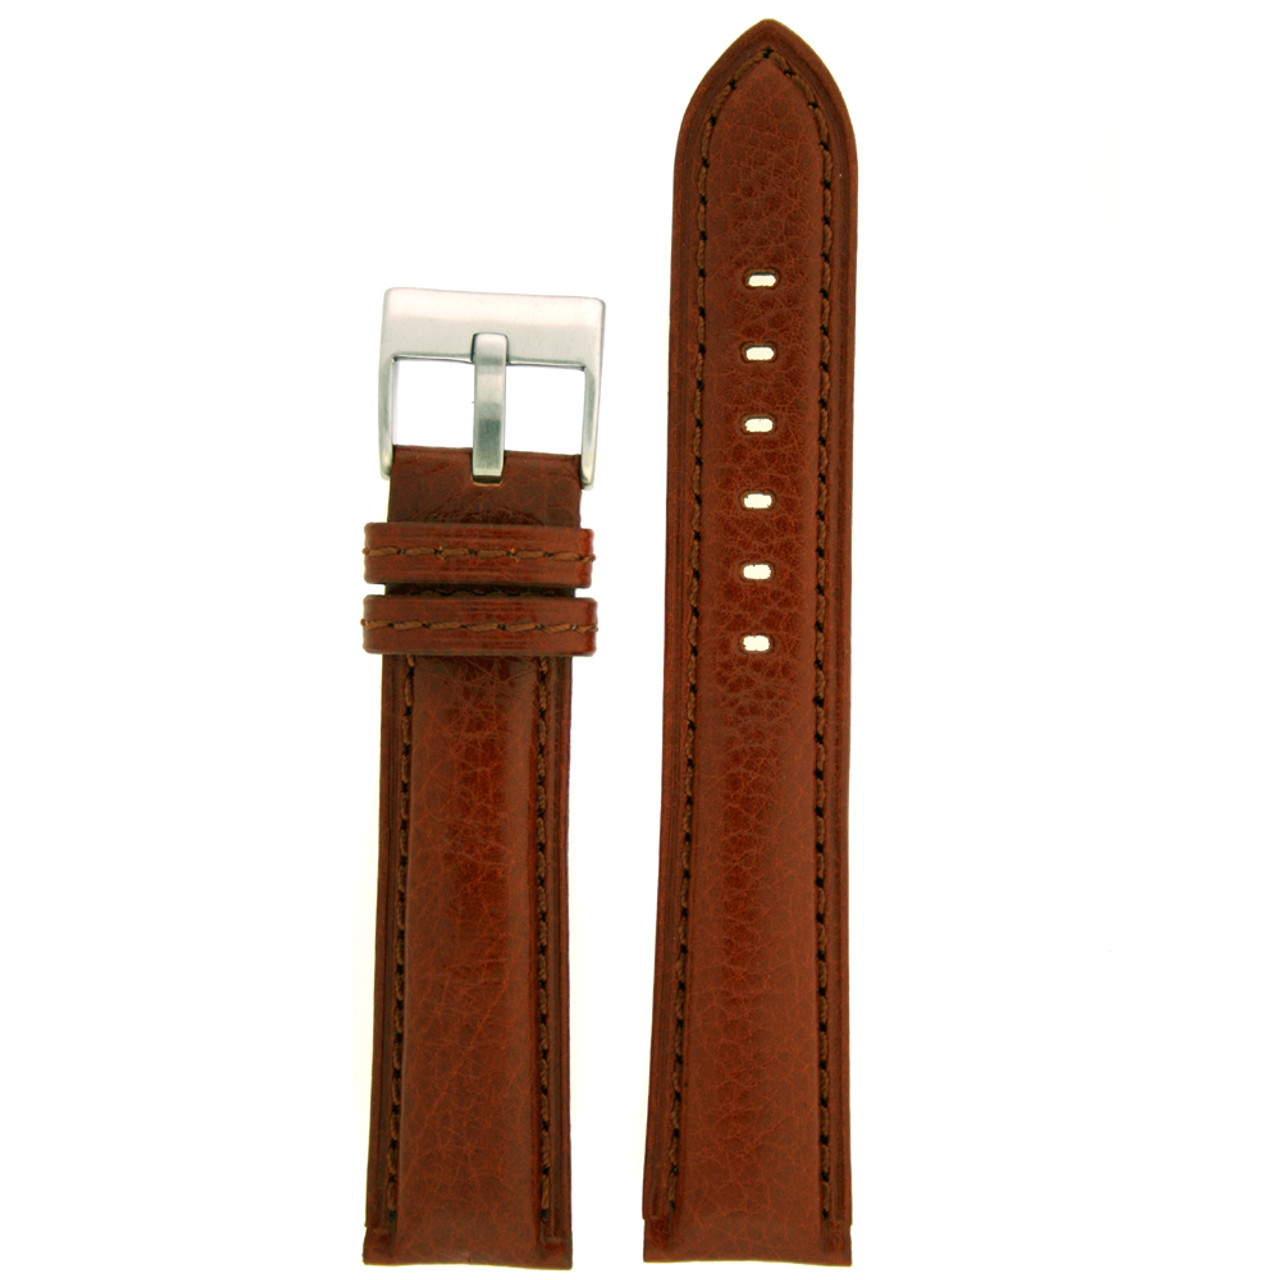 Leather Watch Band in brown by Tech Swiss - Top View